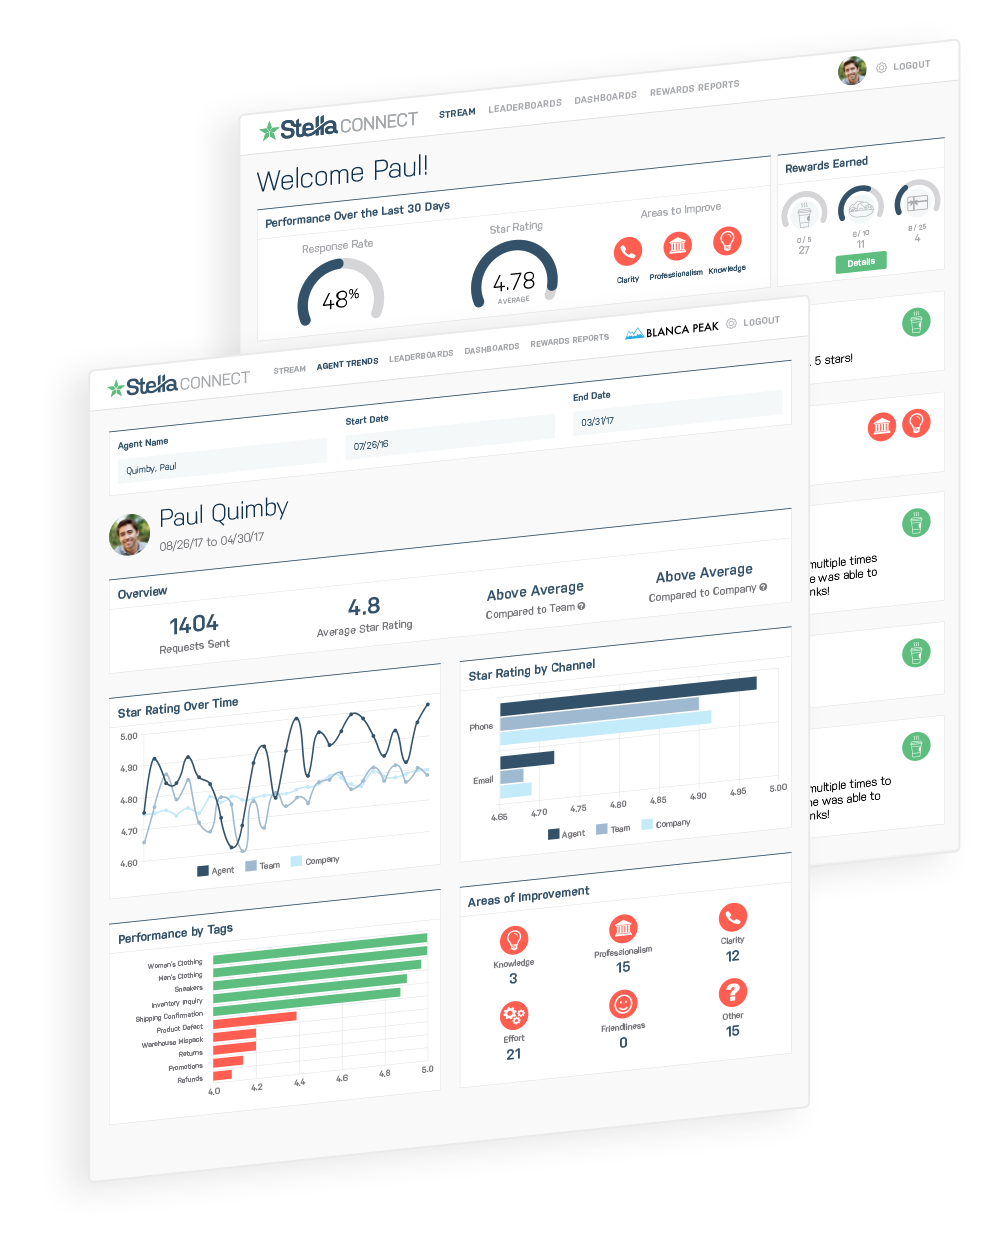 StellaConnect_Dashboard03.png